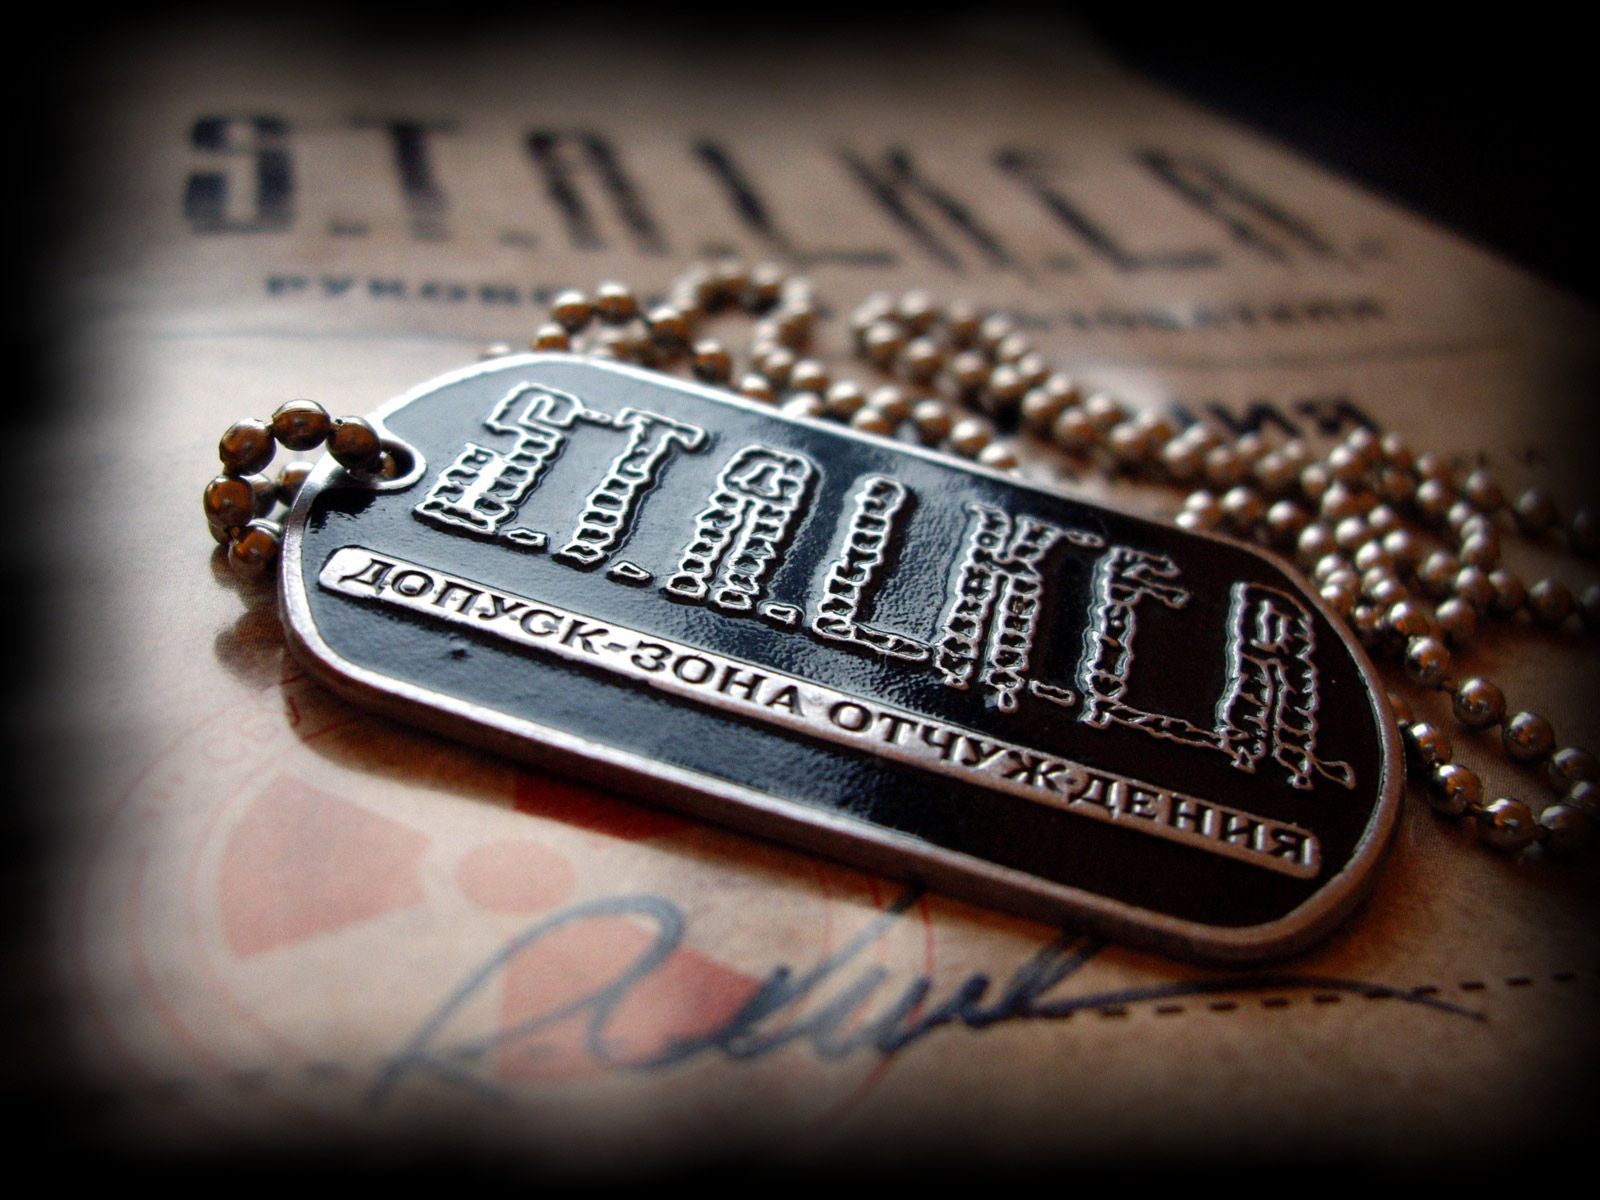 anybody know if this dog tag is for sale anywhere or any place that